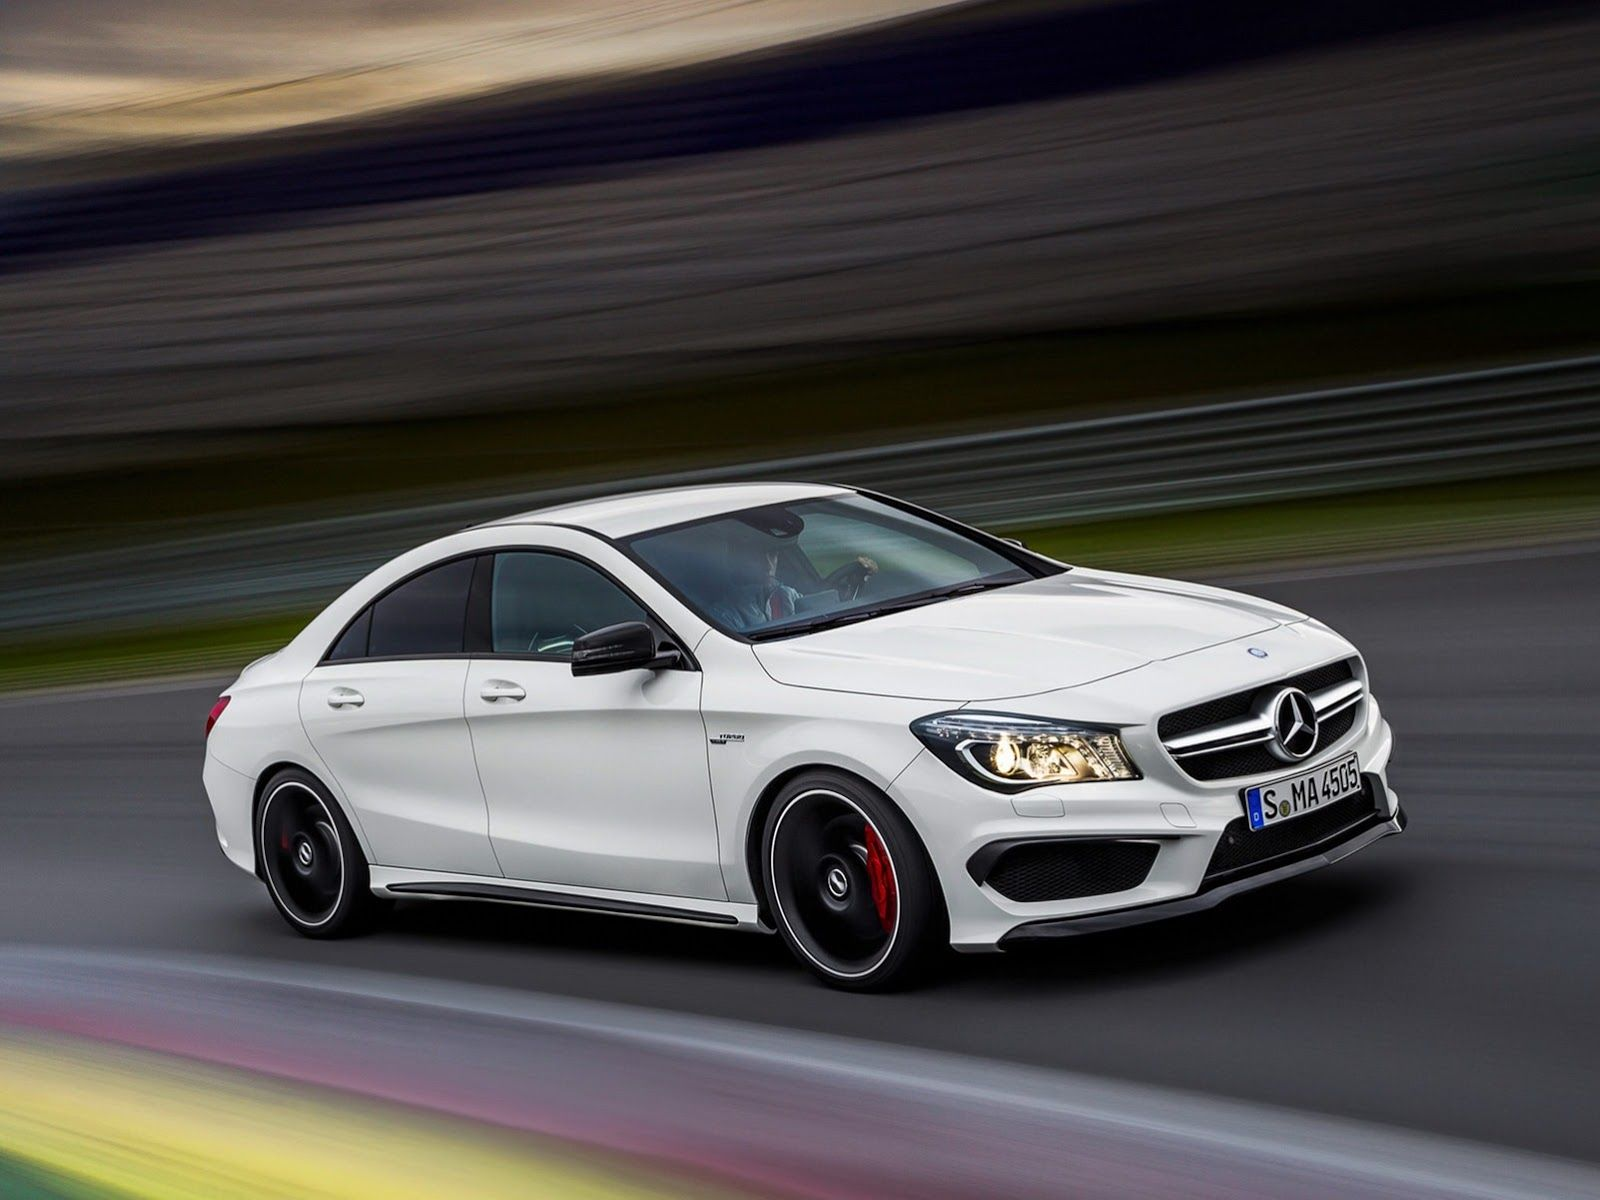 First Photos Of New Mercedes Benz Cla 45 Amg Sports Sedan With